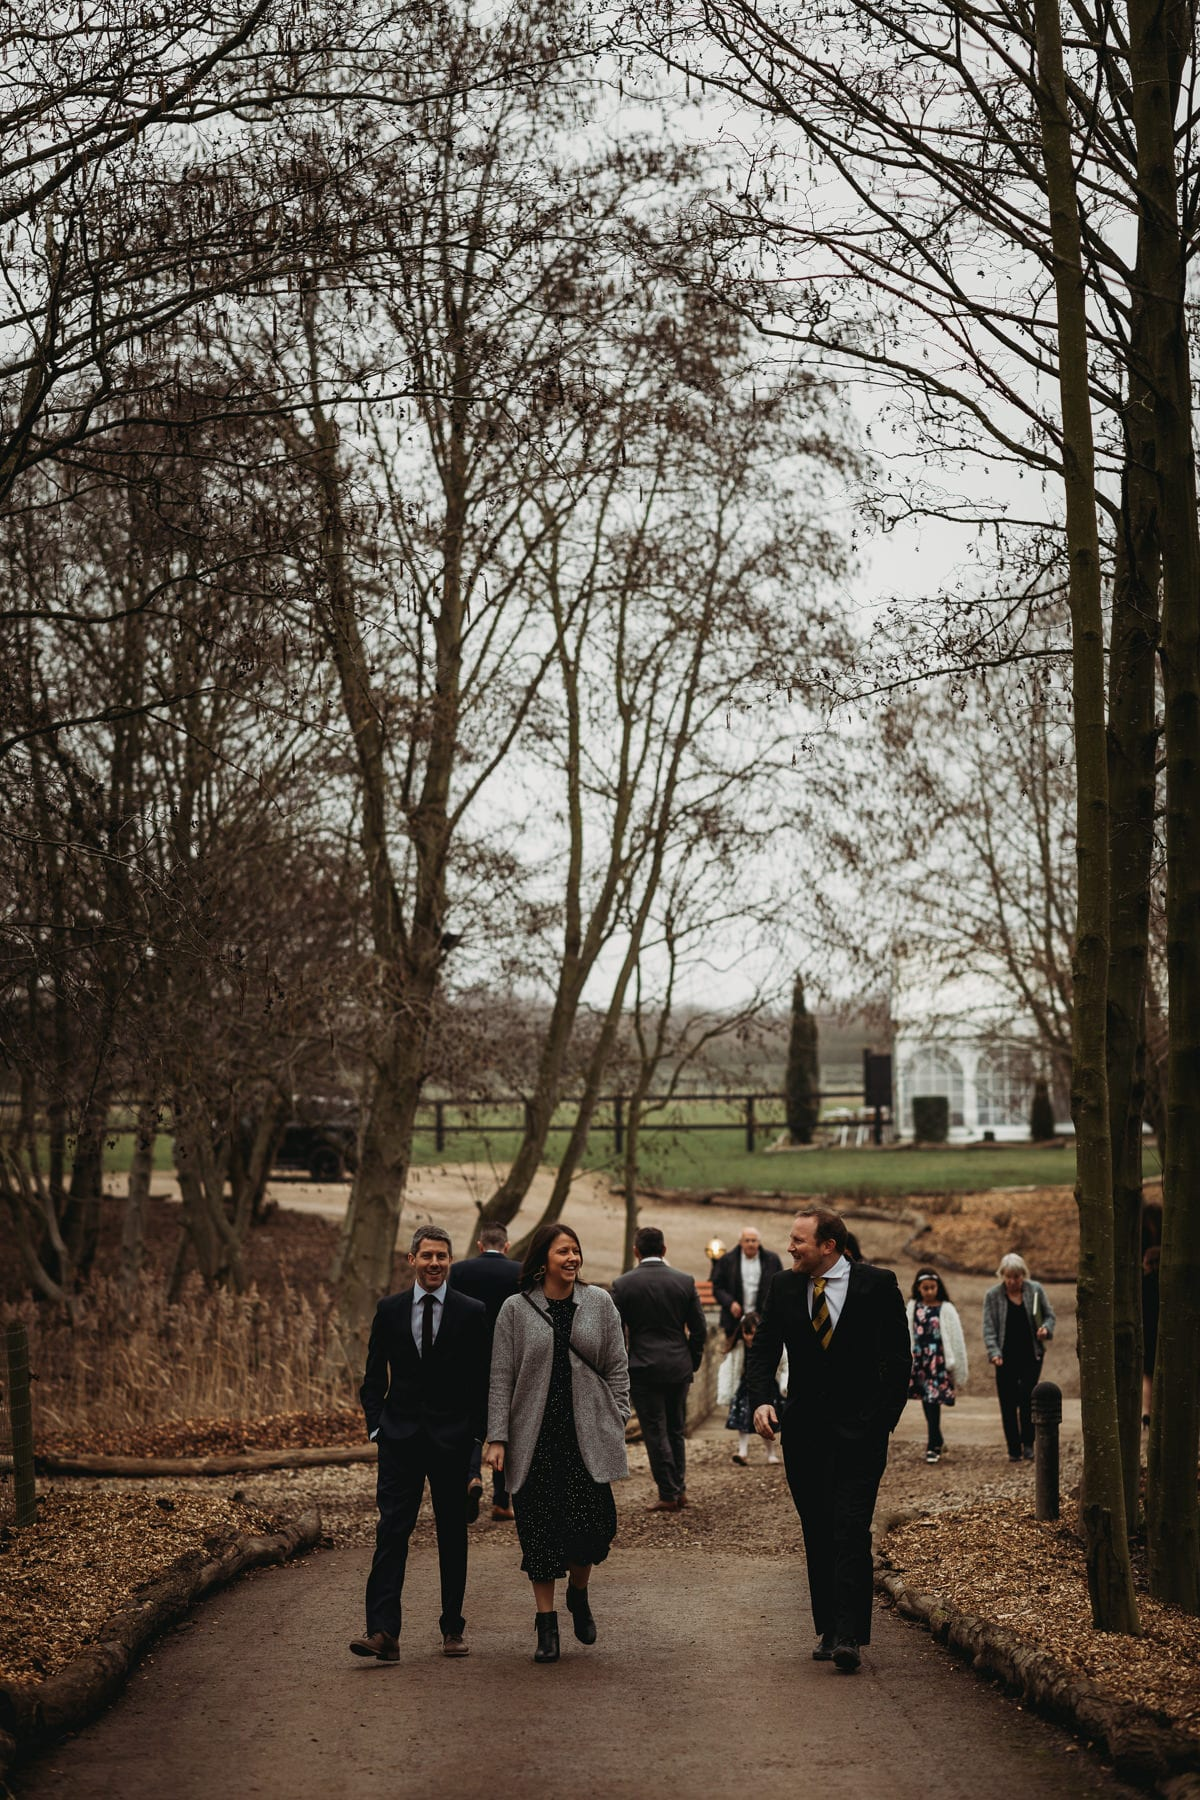 Guests walking in a woodland area